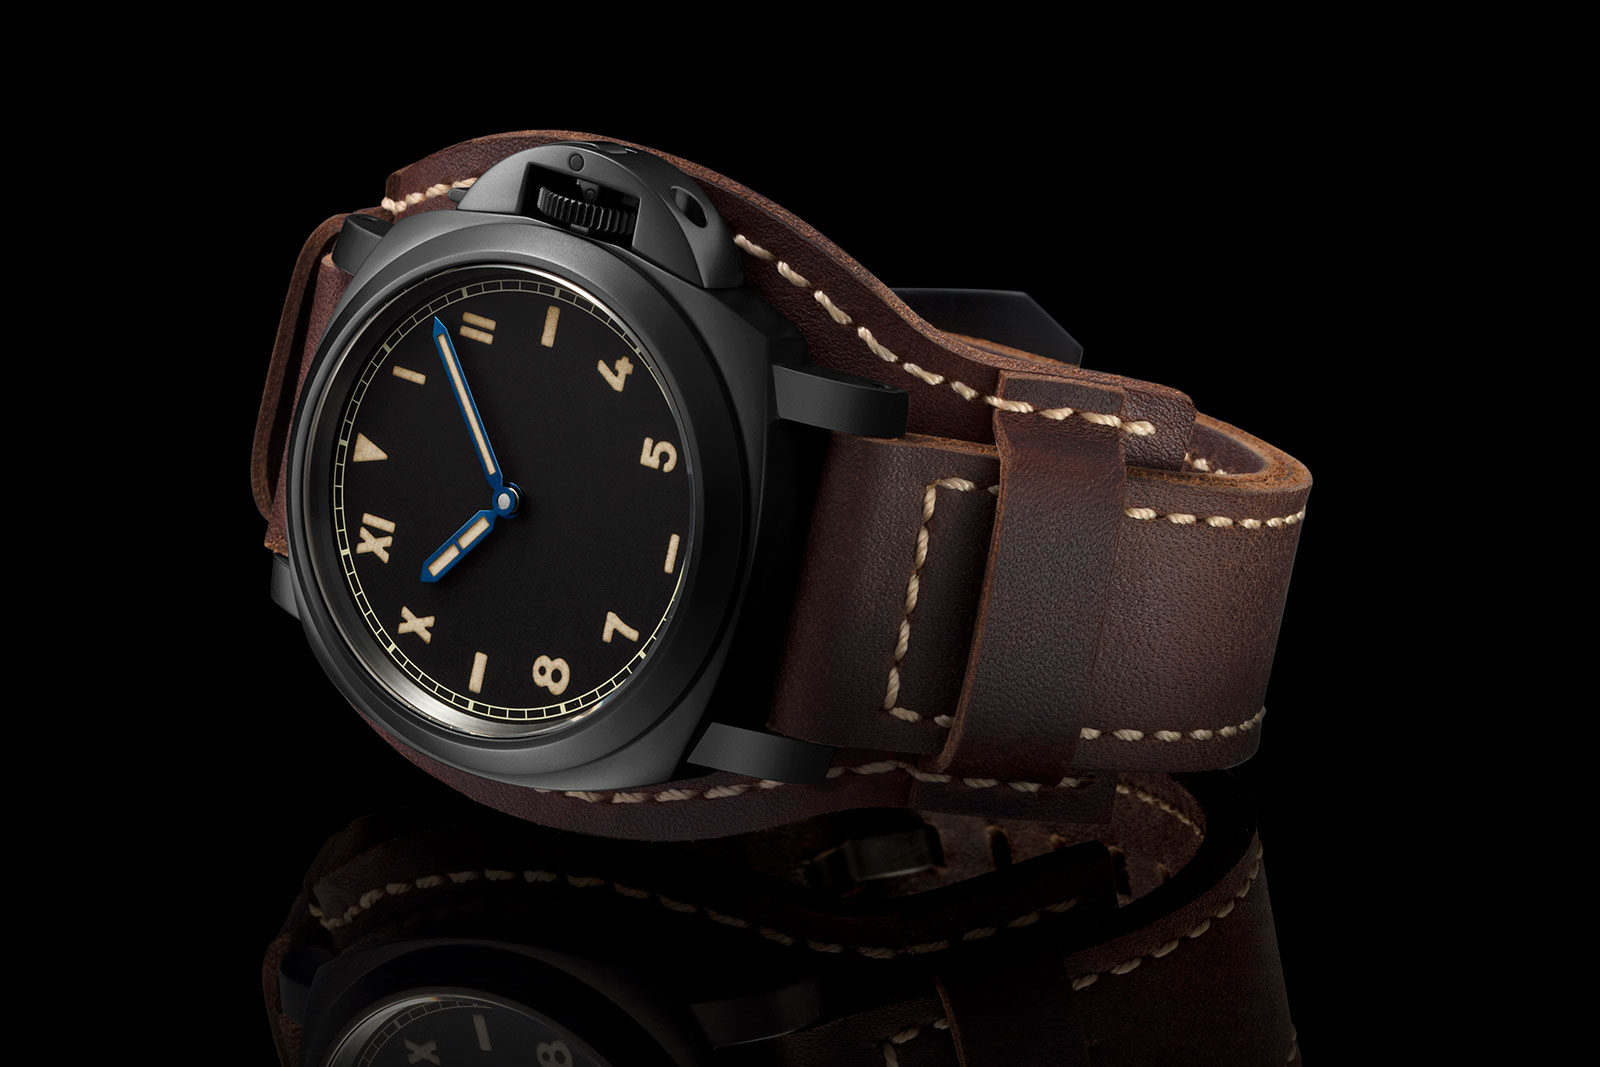 Panerai Panerai Luminor California 8 Days DLC PAM 779 2